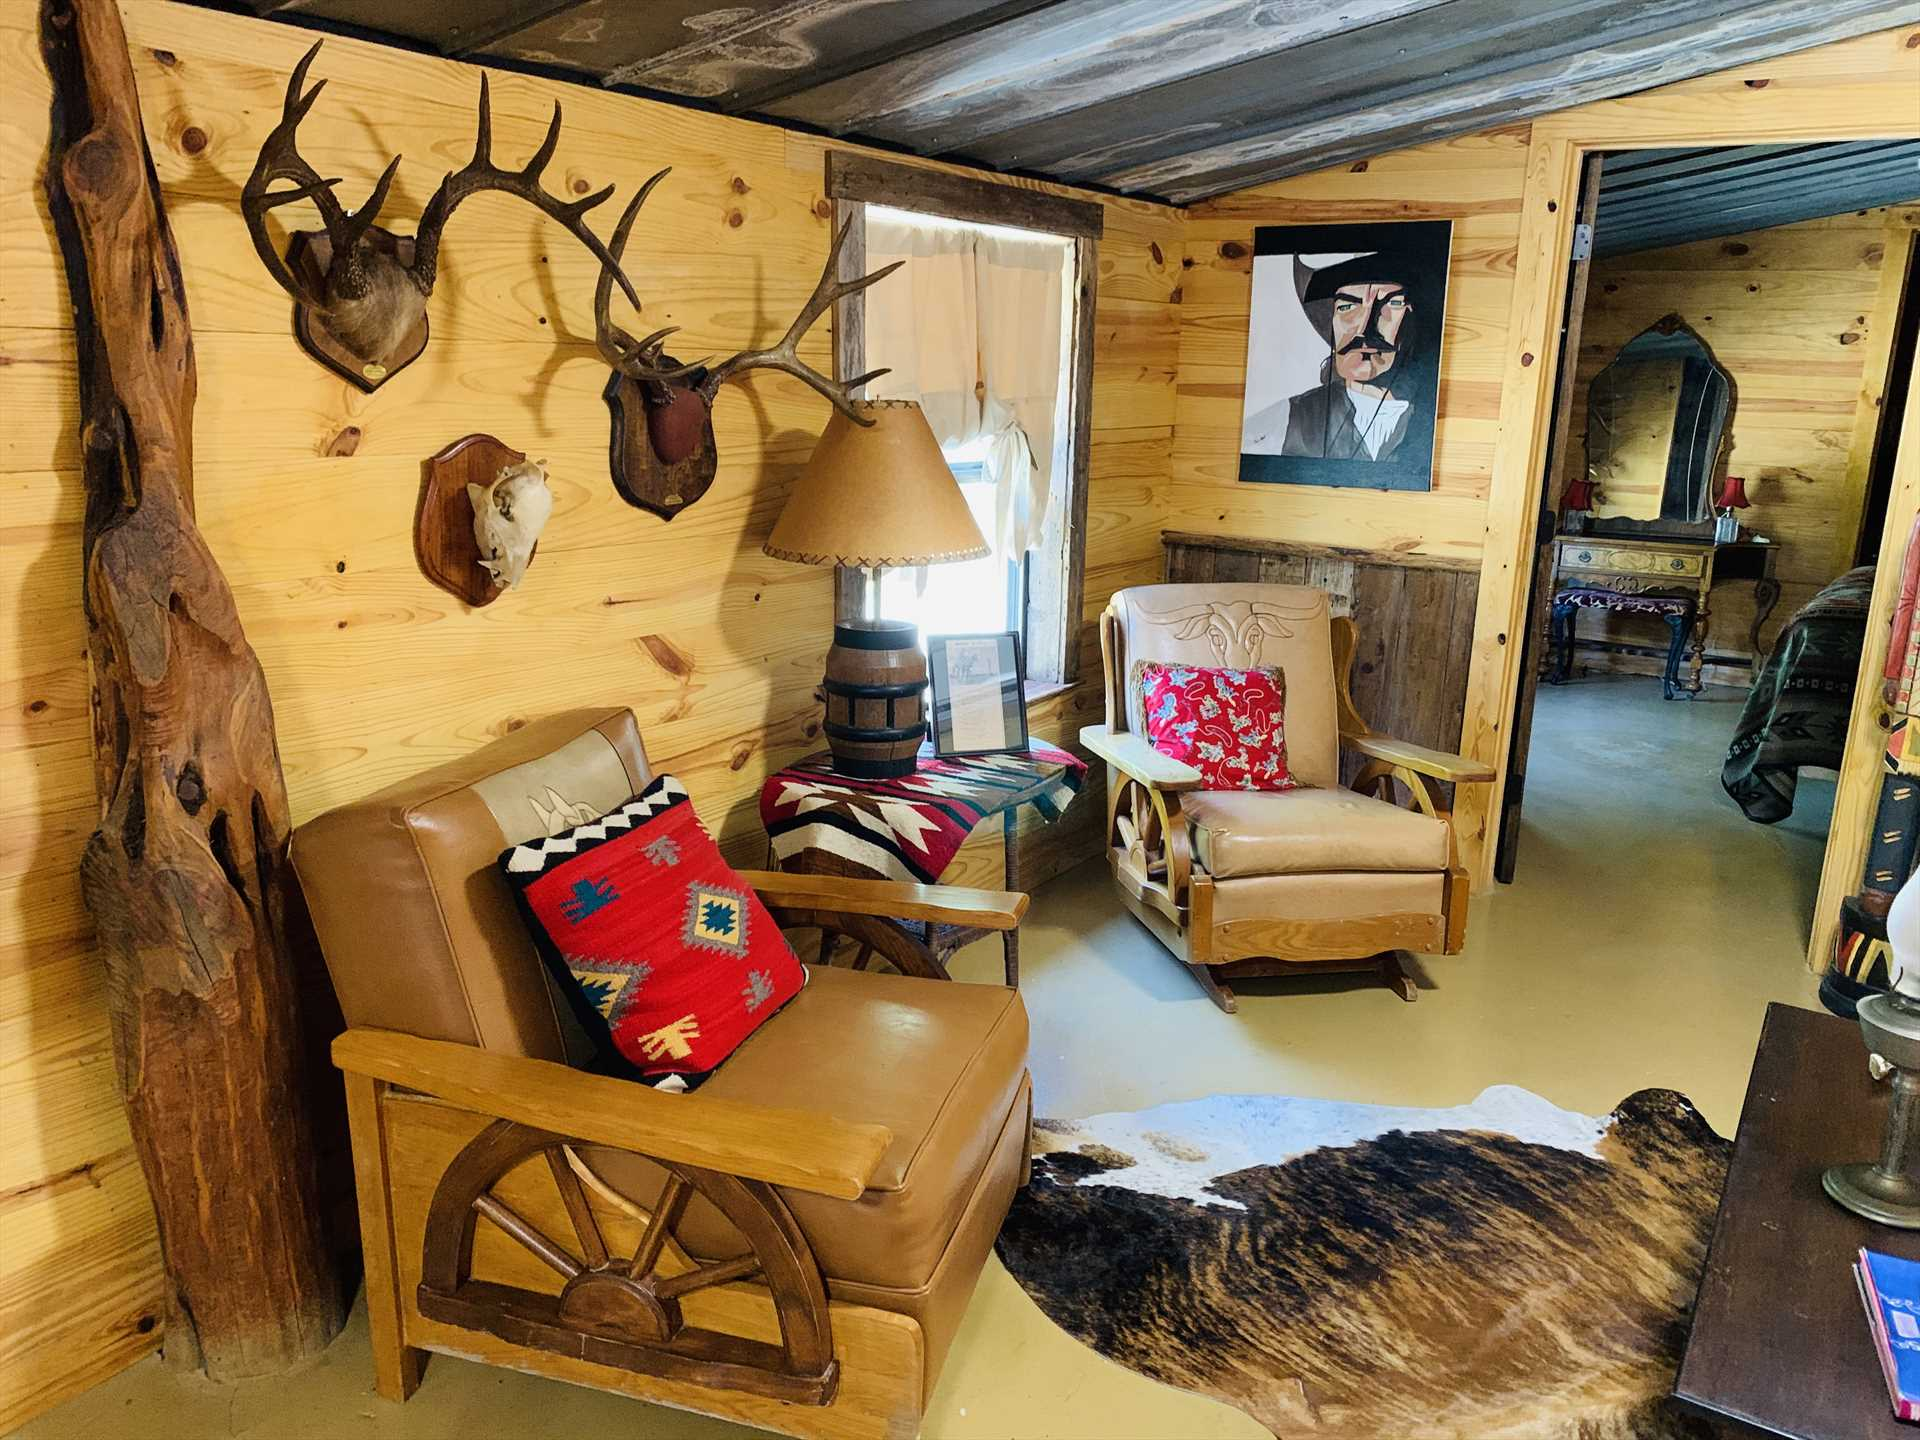 No need to ride the hot and dusty range to feel like an authentic cowboy or ranch hand-just come in and sit a spell!